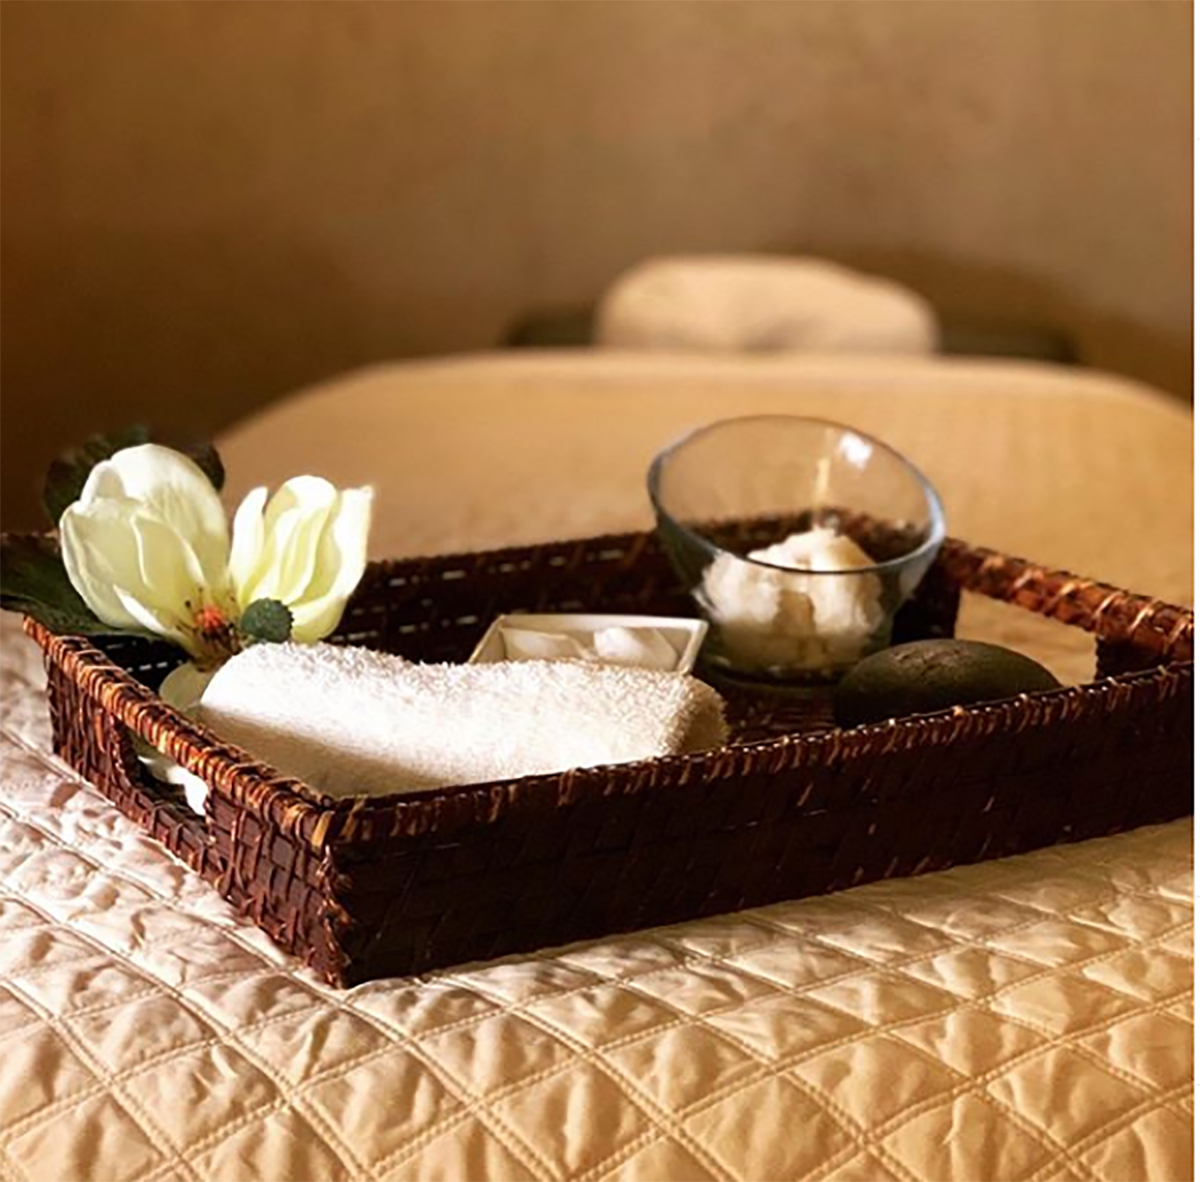 One of the spa's treatment rooms.